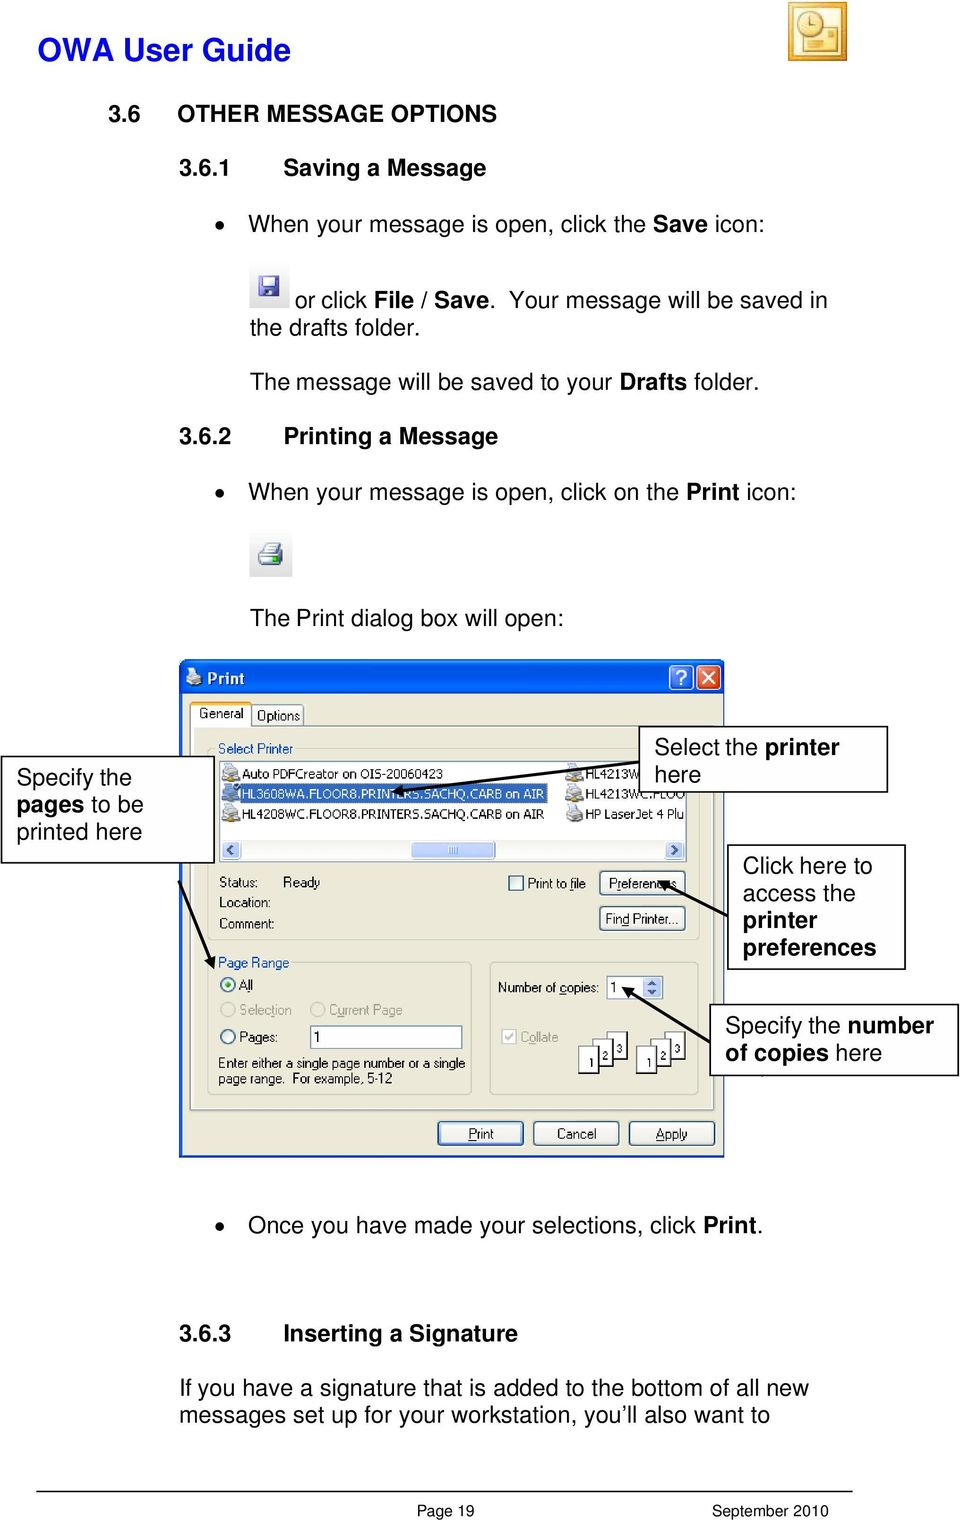 2 Printing a Message When your message is open, click on the Print icon: The Print dialog box will open: Specify the pages to be printed here Select the printer here Click